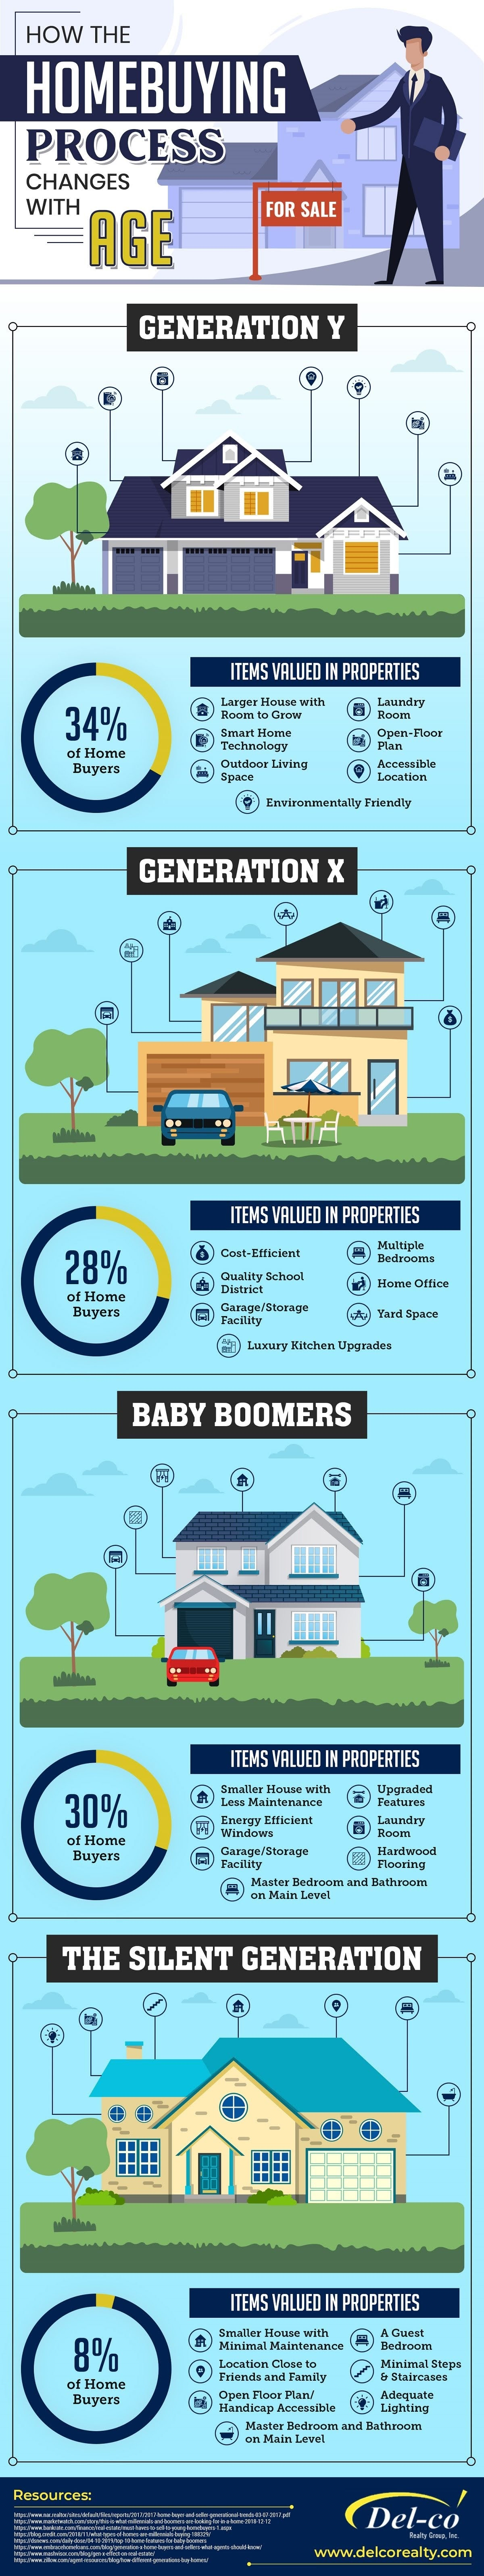 How the Home-Buying Process Changes With Age #infographic